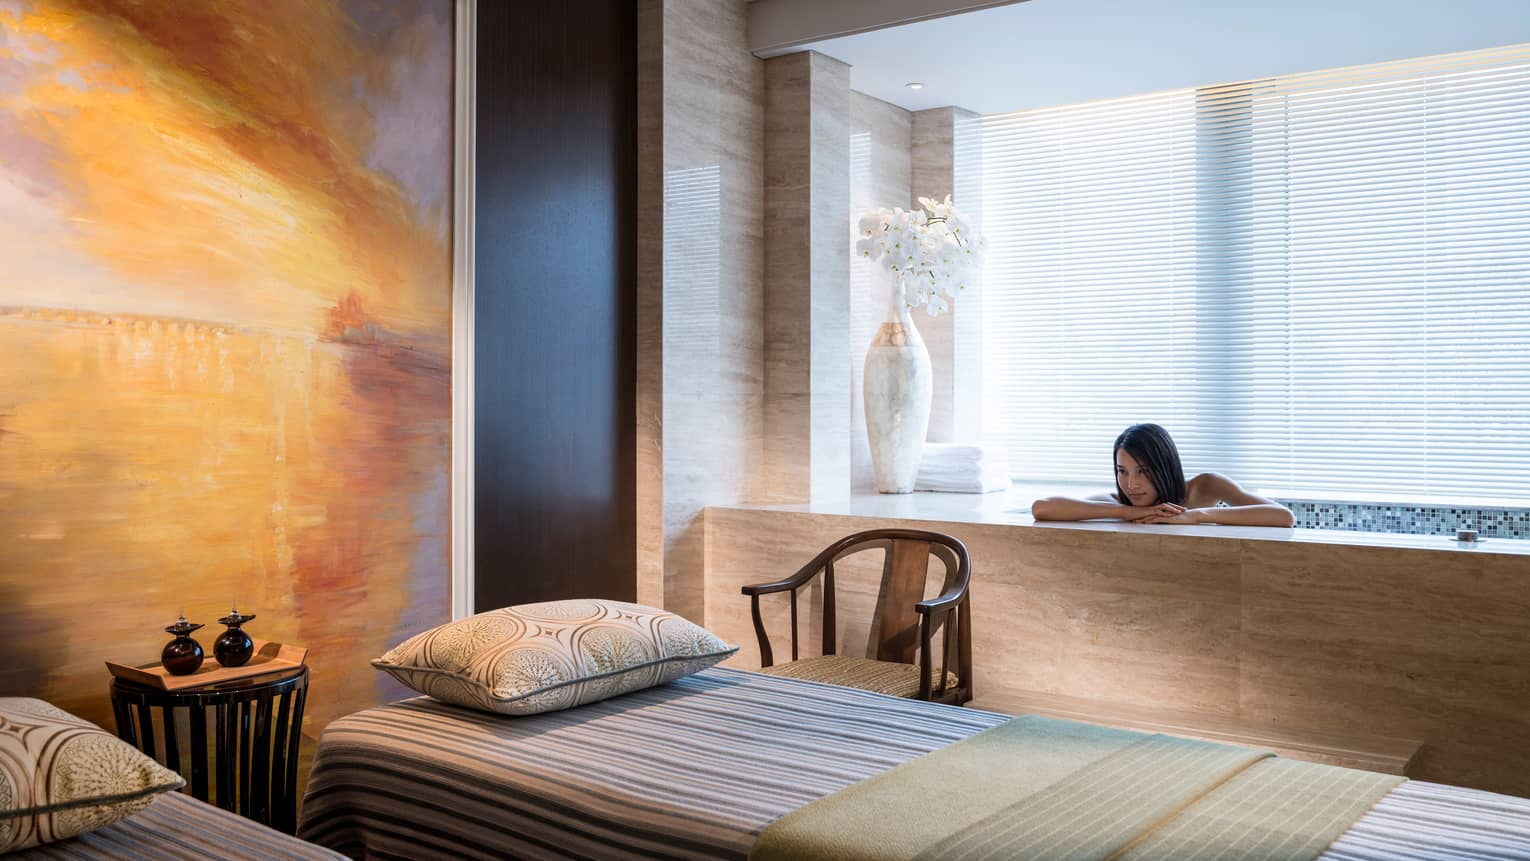 Woman rests head, arms on Spa tub beside massage table